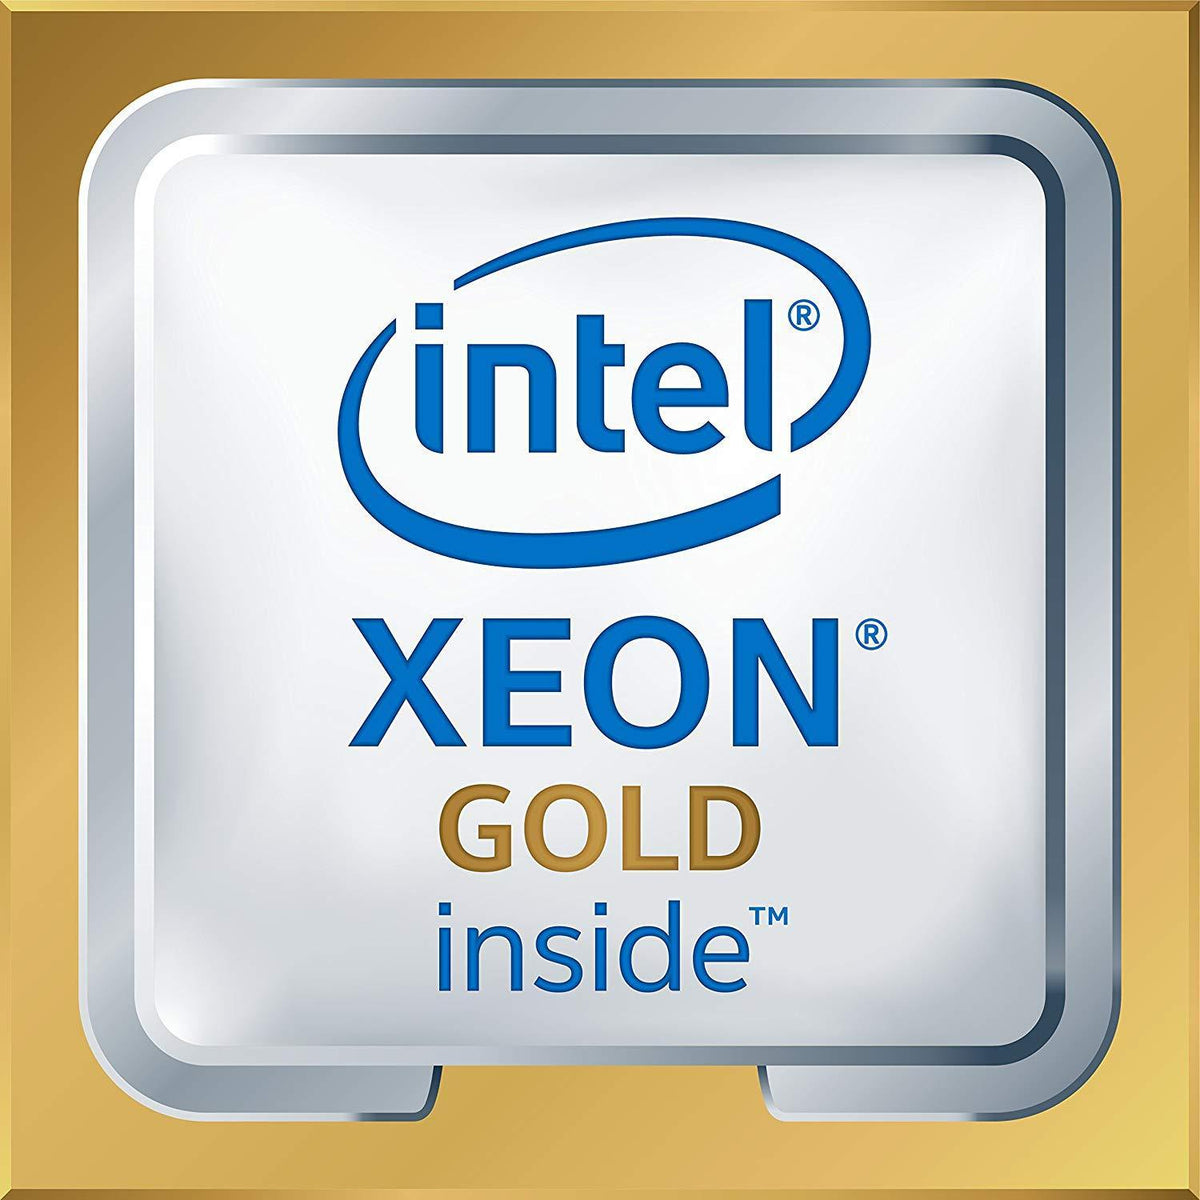 SR3MN - Intel Xeon-Gold 5119T (1.9GHz/14-core/85W) Processor